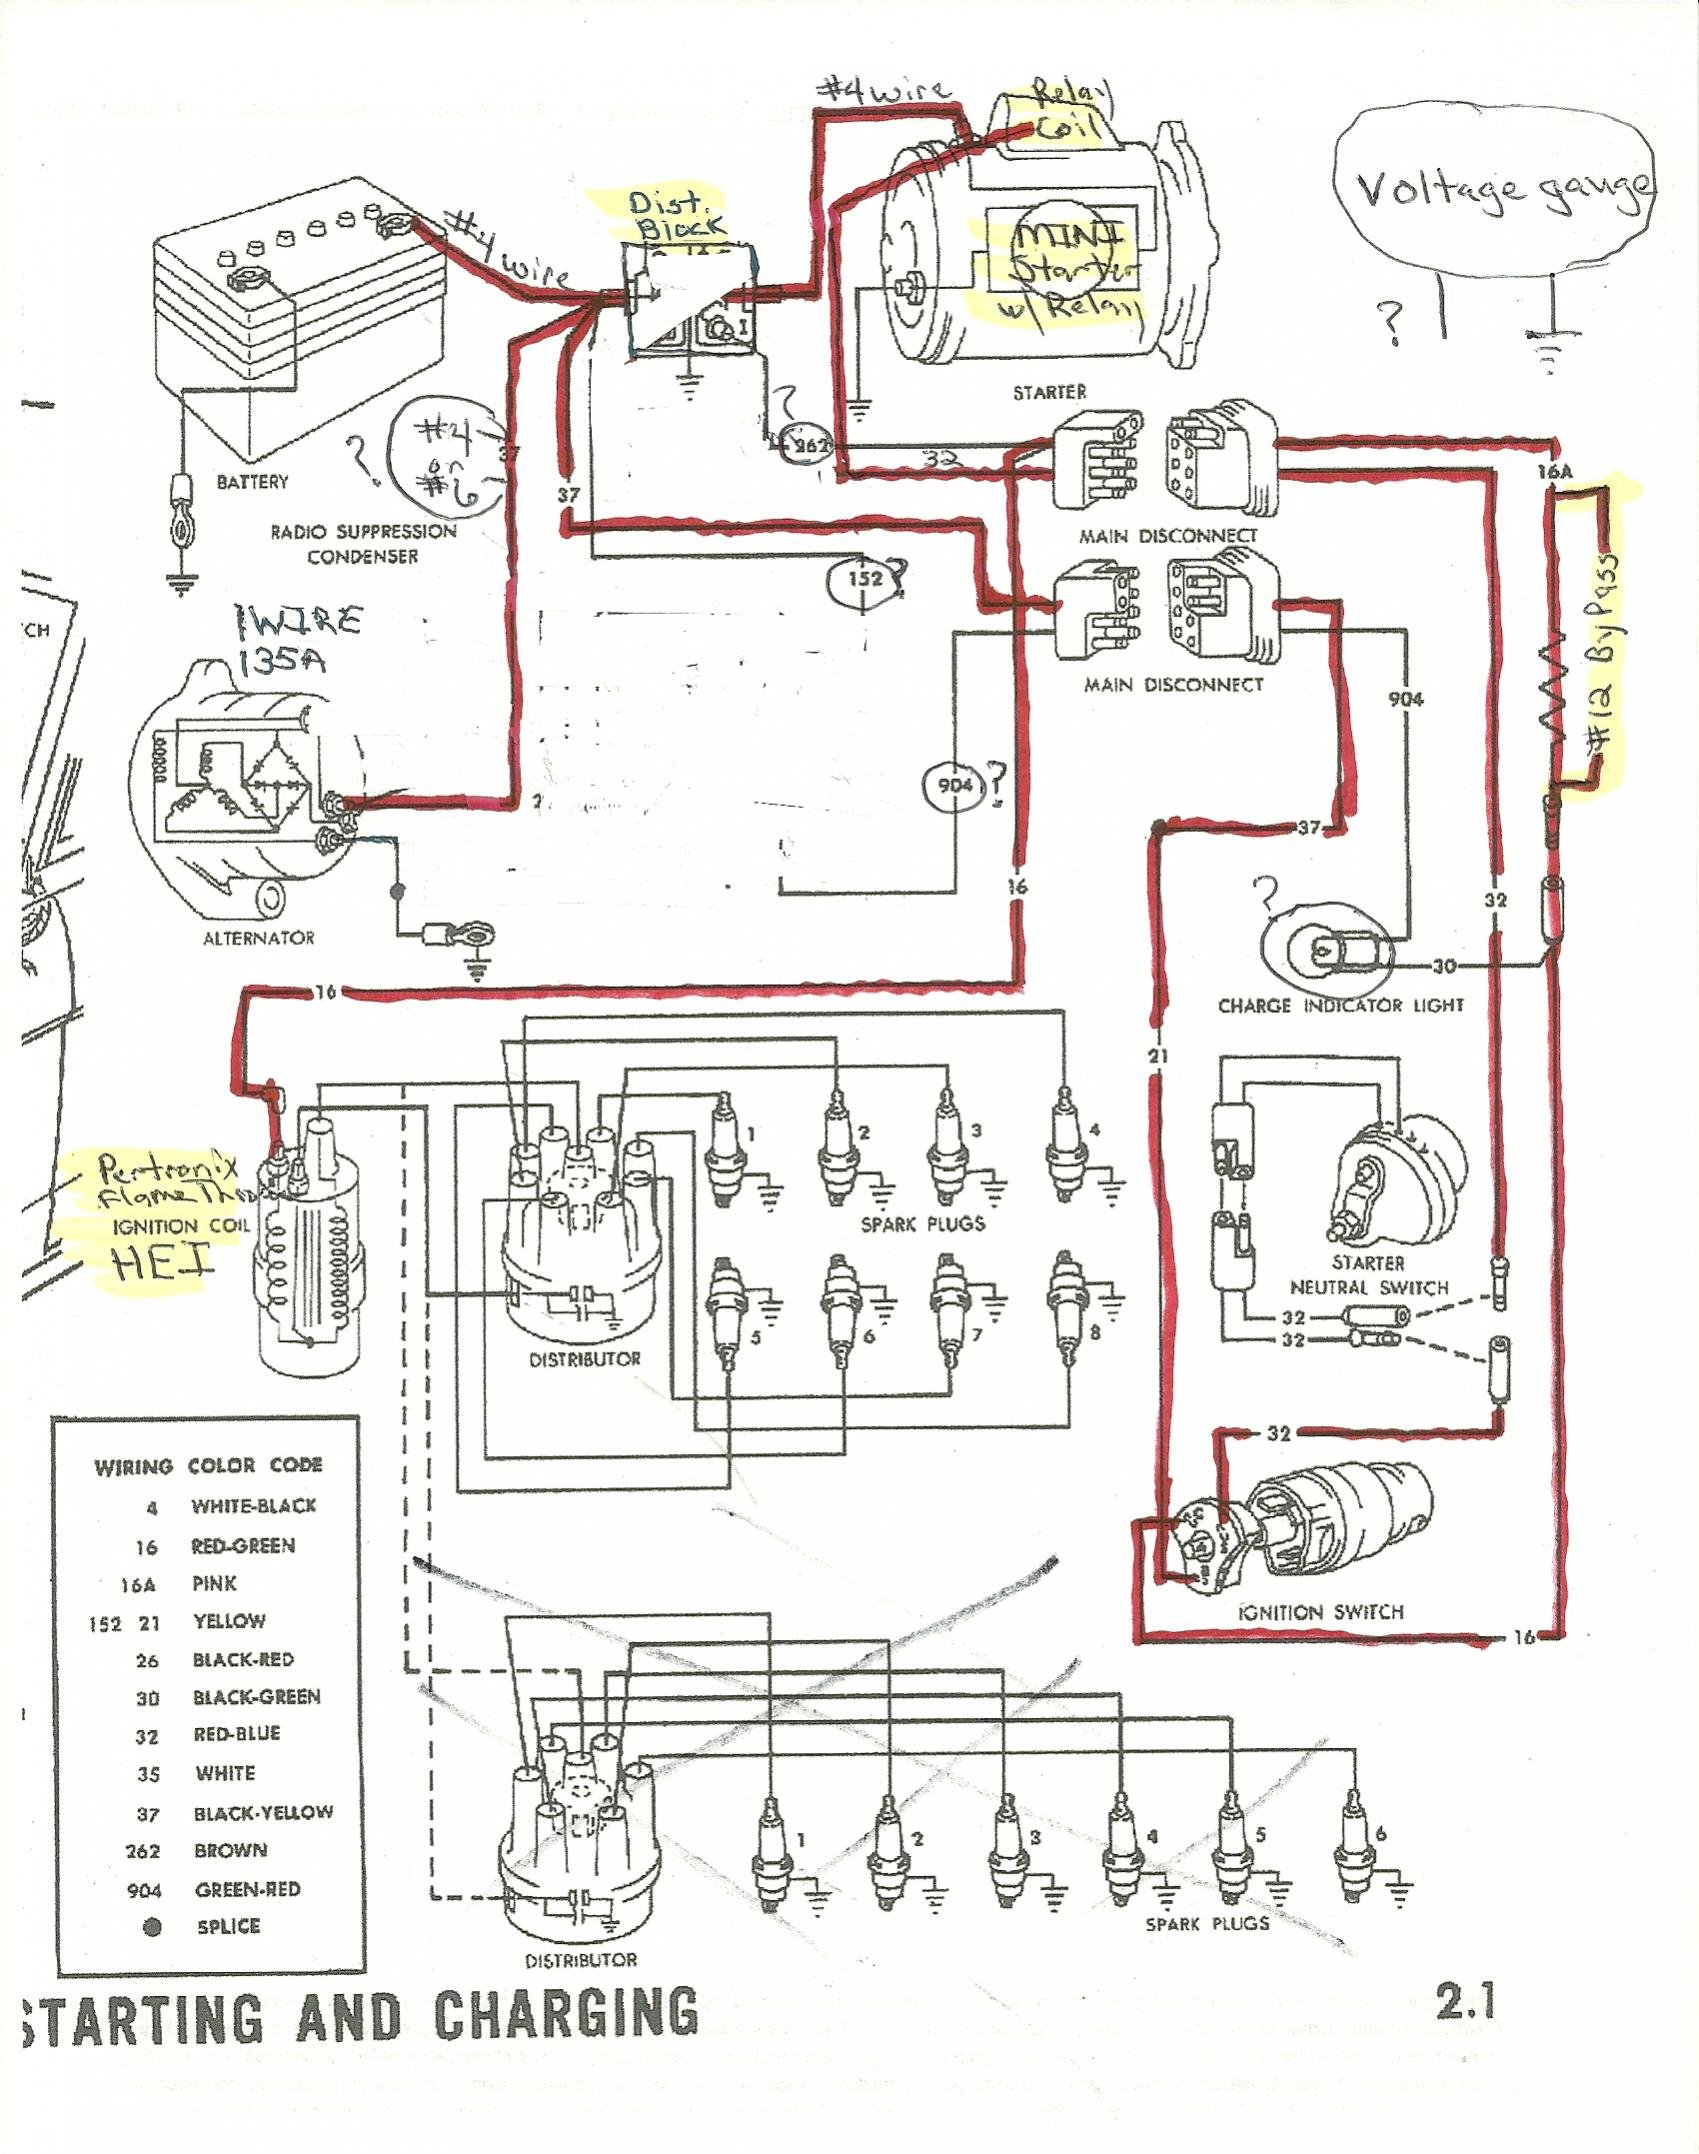 1965 Mustang Wiring Diagrams http://www.allfordmustangs.com/forums/classic-tech/357535-1965-alternator-starter-distributor-wiring.html